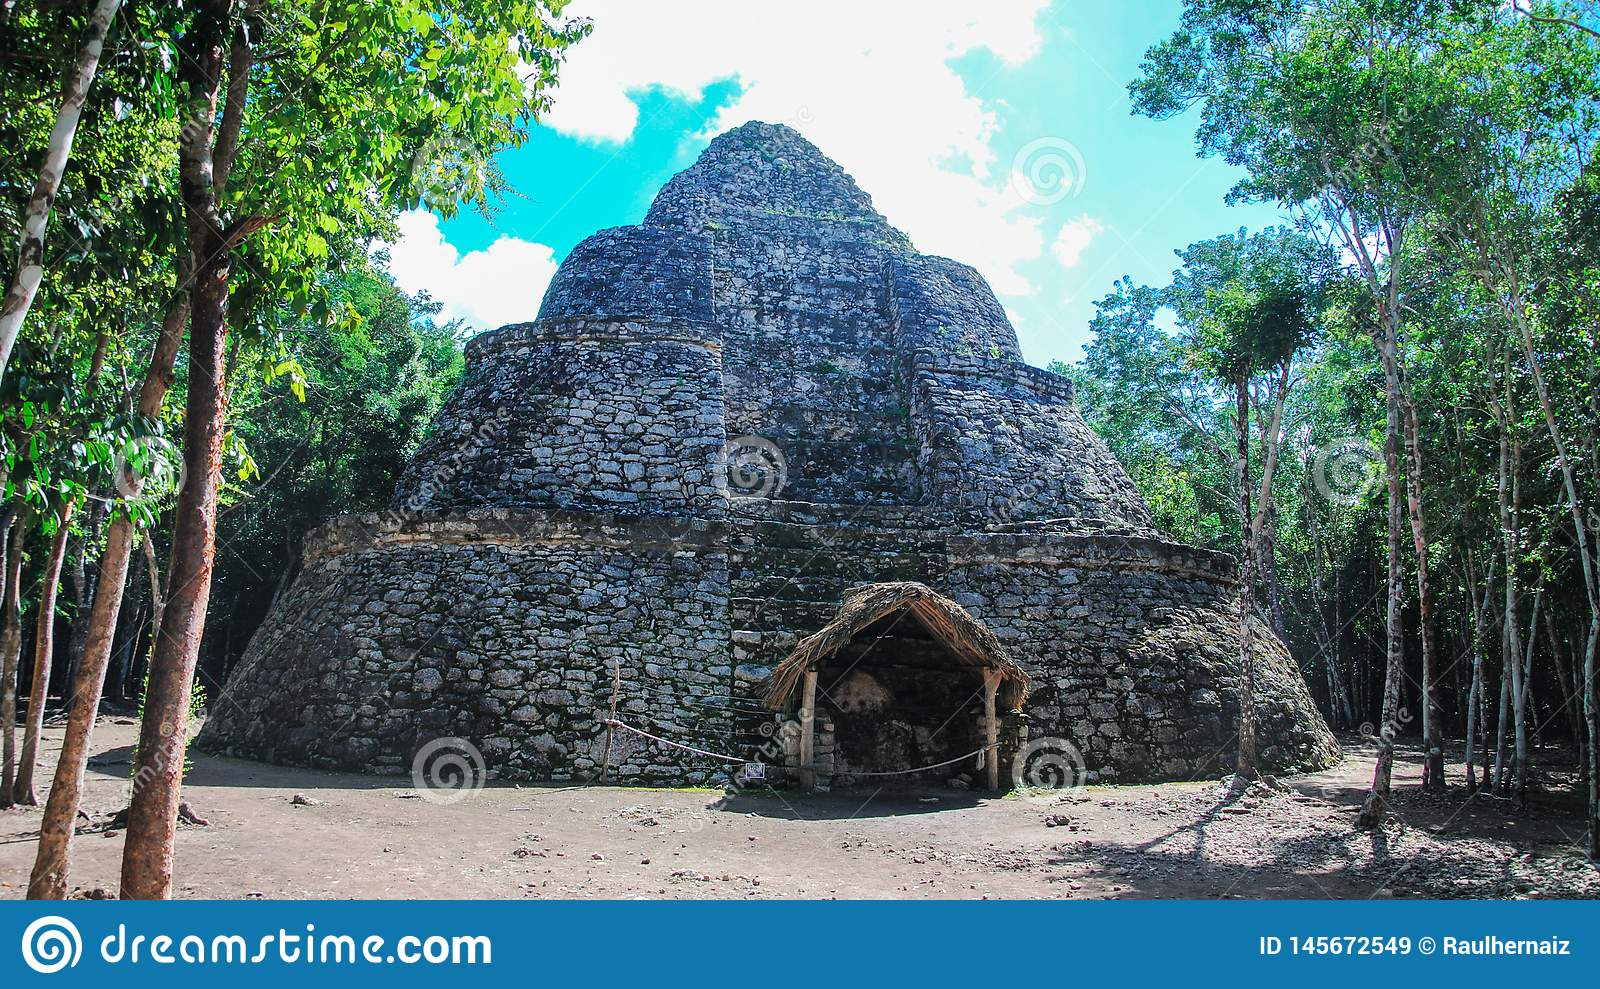 Ancient mayan city of Coba, in Mexico. Coba is an archaeological area and a famous landmark of Yucatan Peninsula